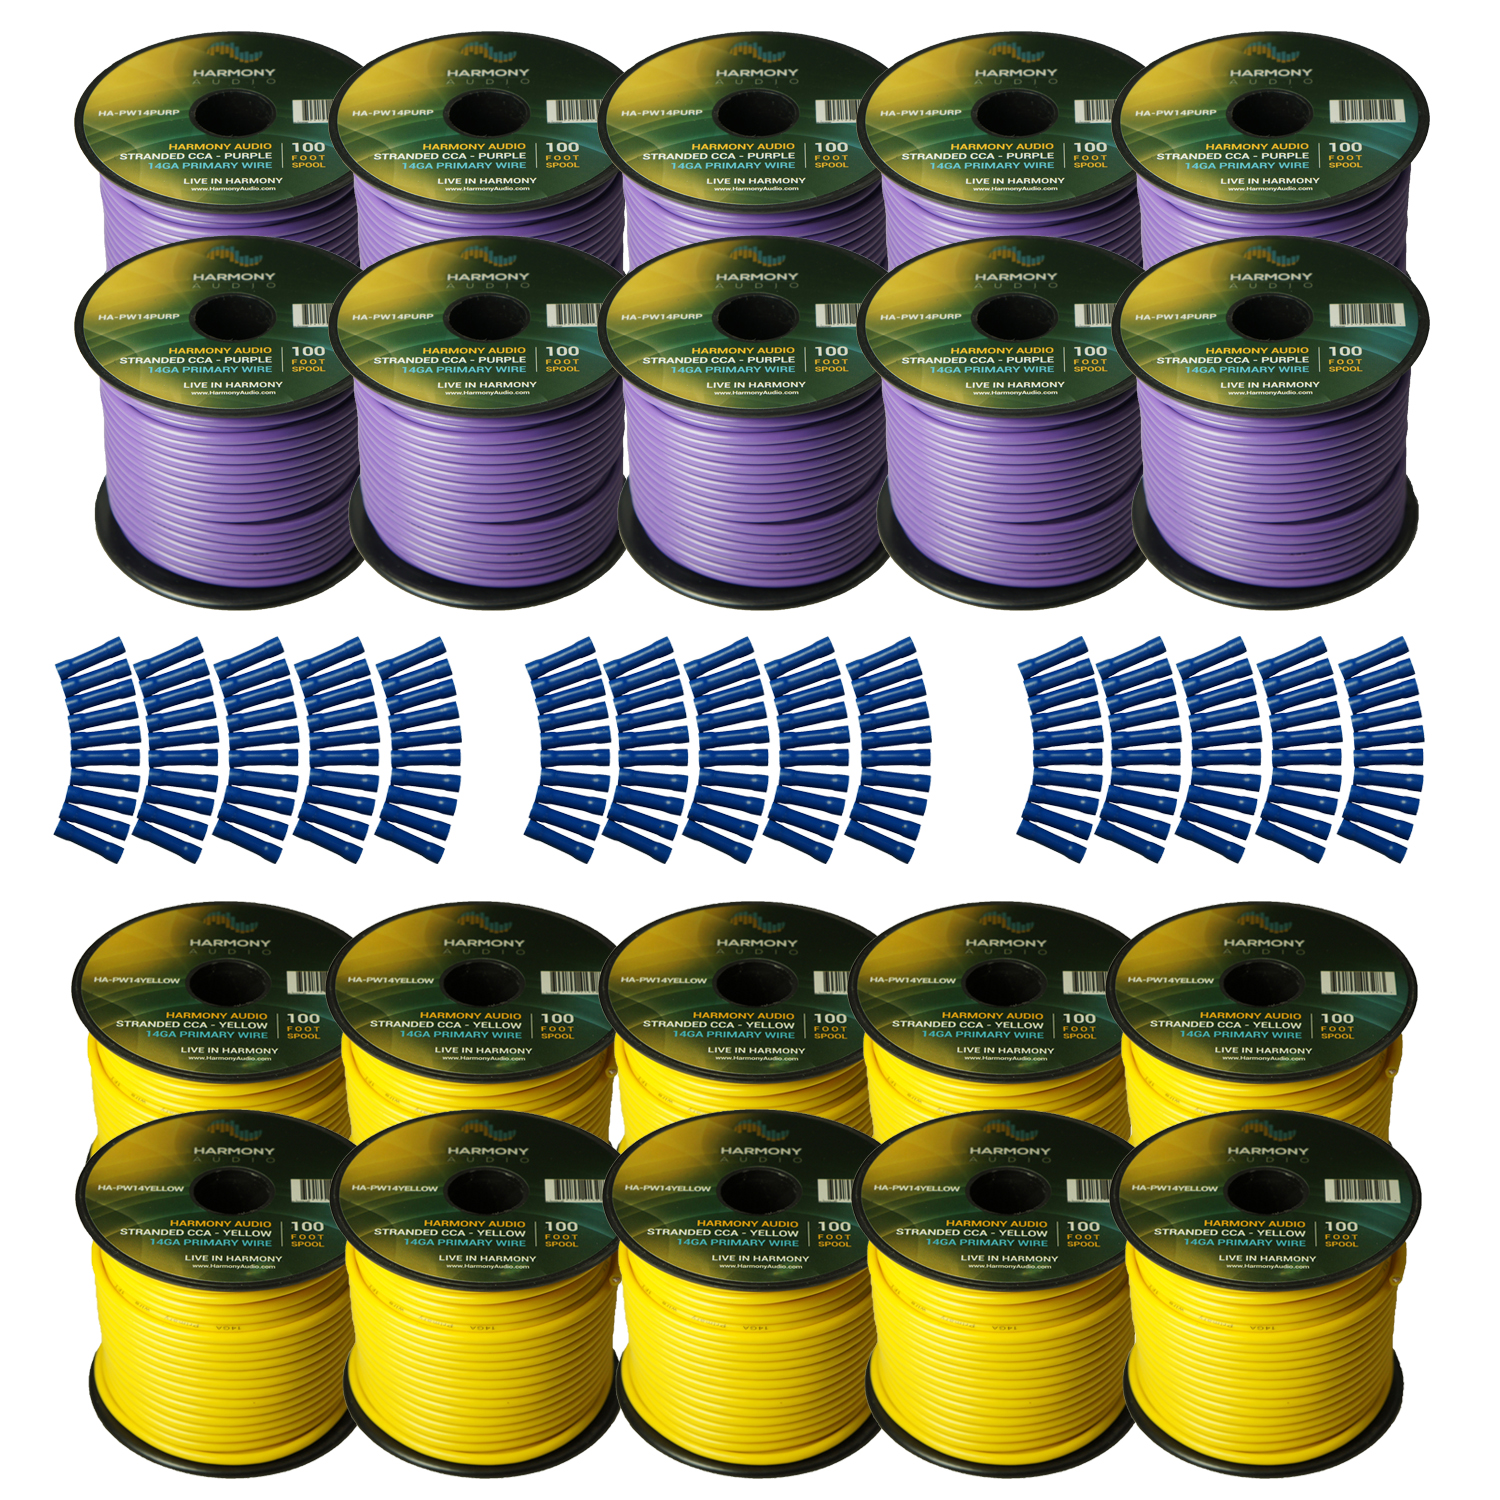 Harmony Audio Primary Single Conductor 14 Gauge Power or Ground Wire - 20 Rolls - 2000 Feet - Yellow & Purple for Car Audio / Trailer / Model Train / Remote